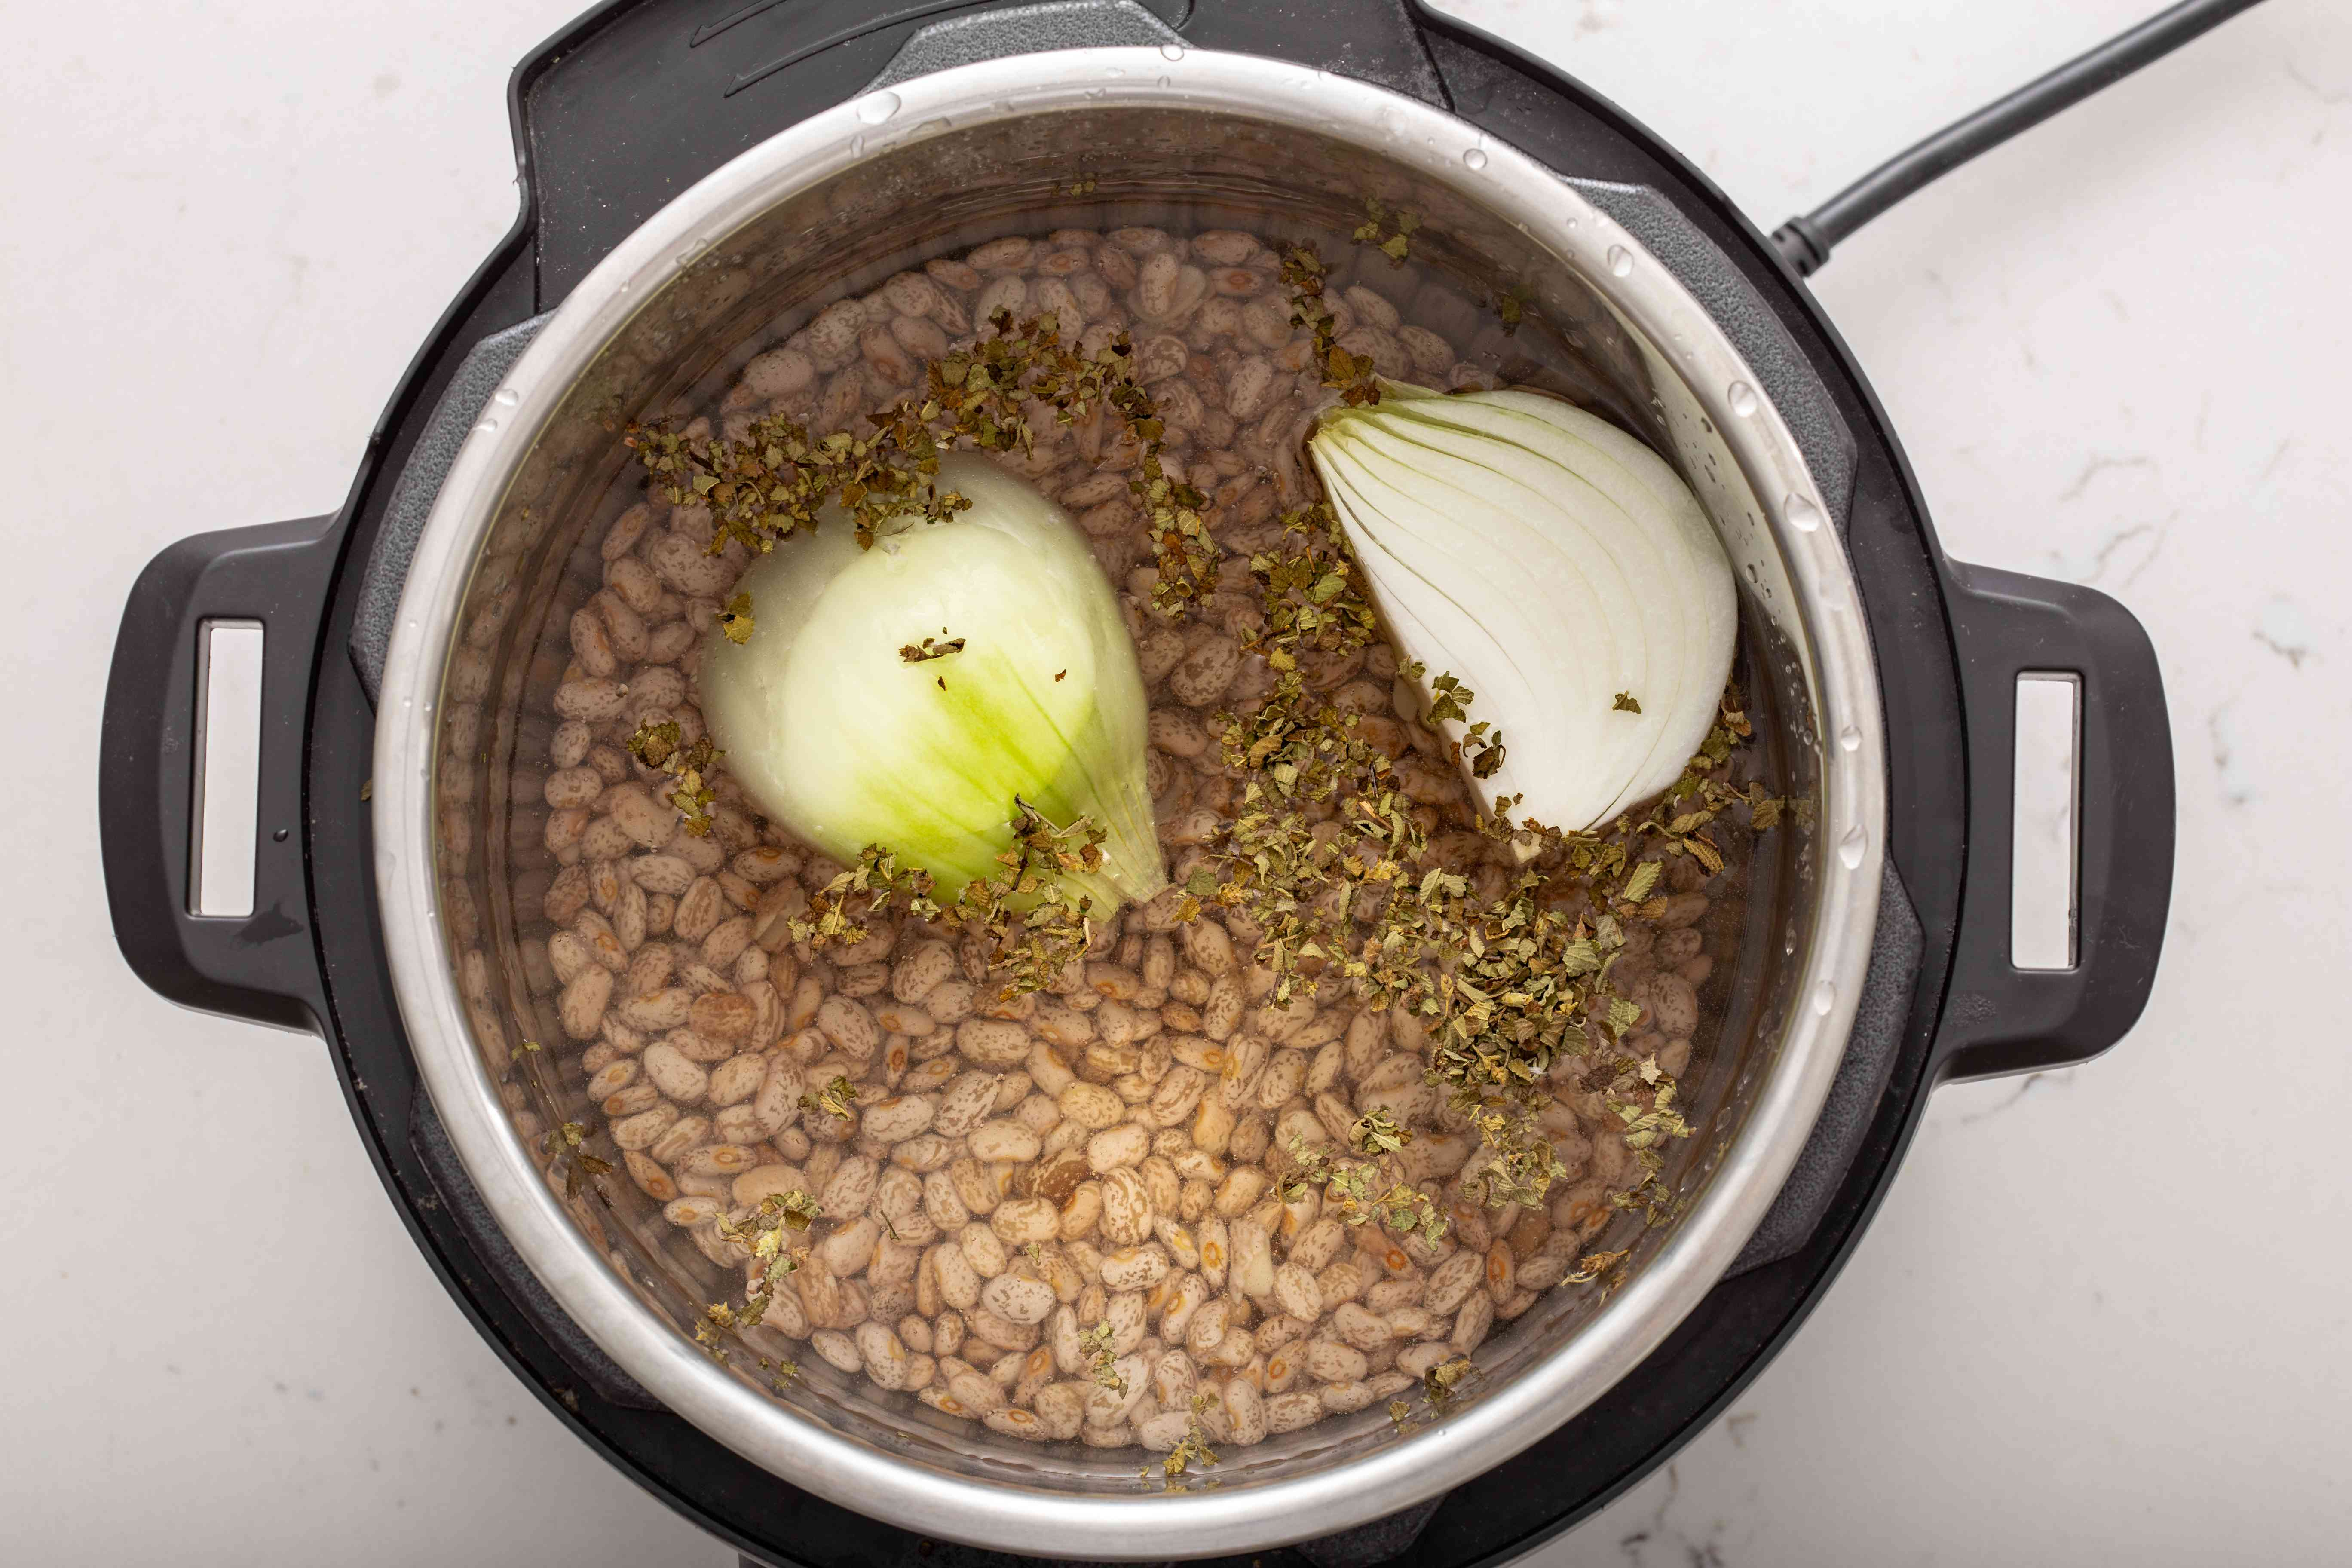 Making refried beans in a pressure cooker.